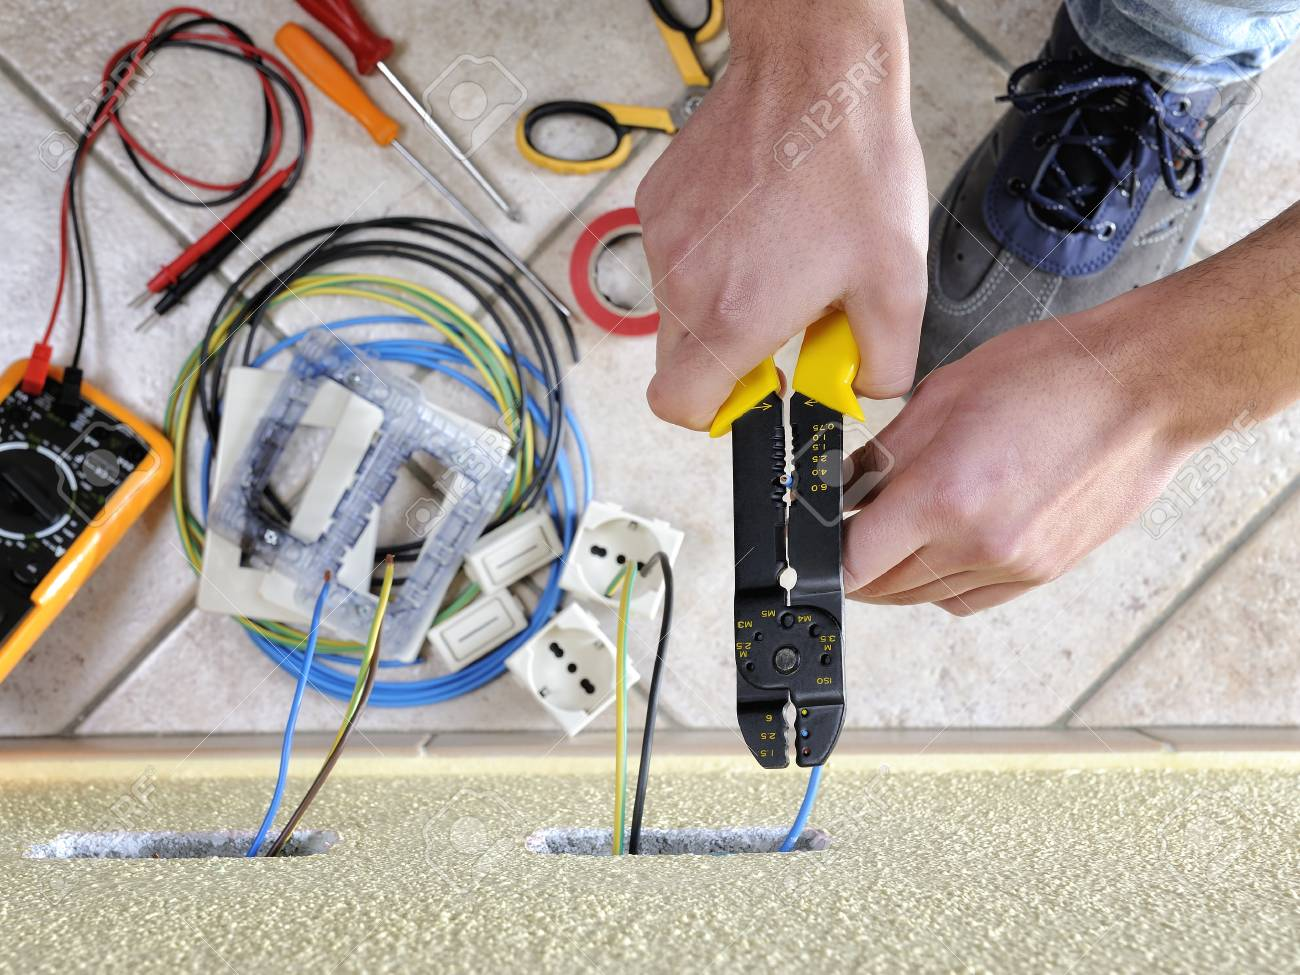 Electrician Technician At Work Uses The Wire Stripper In A ...